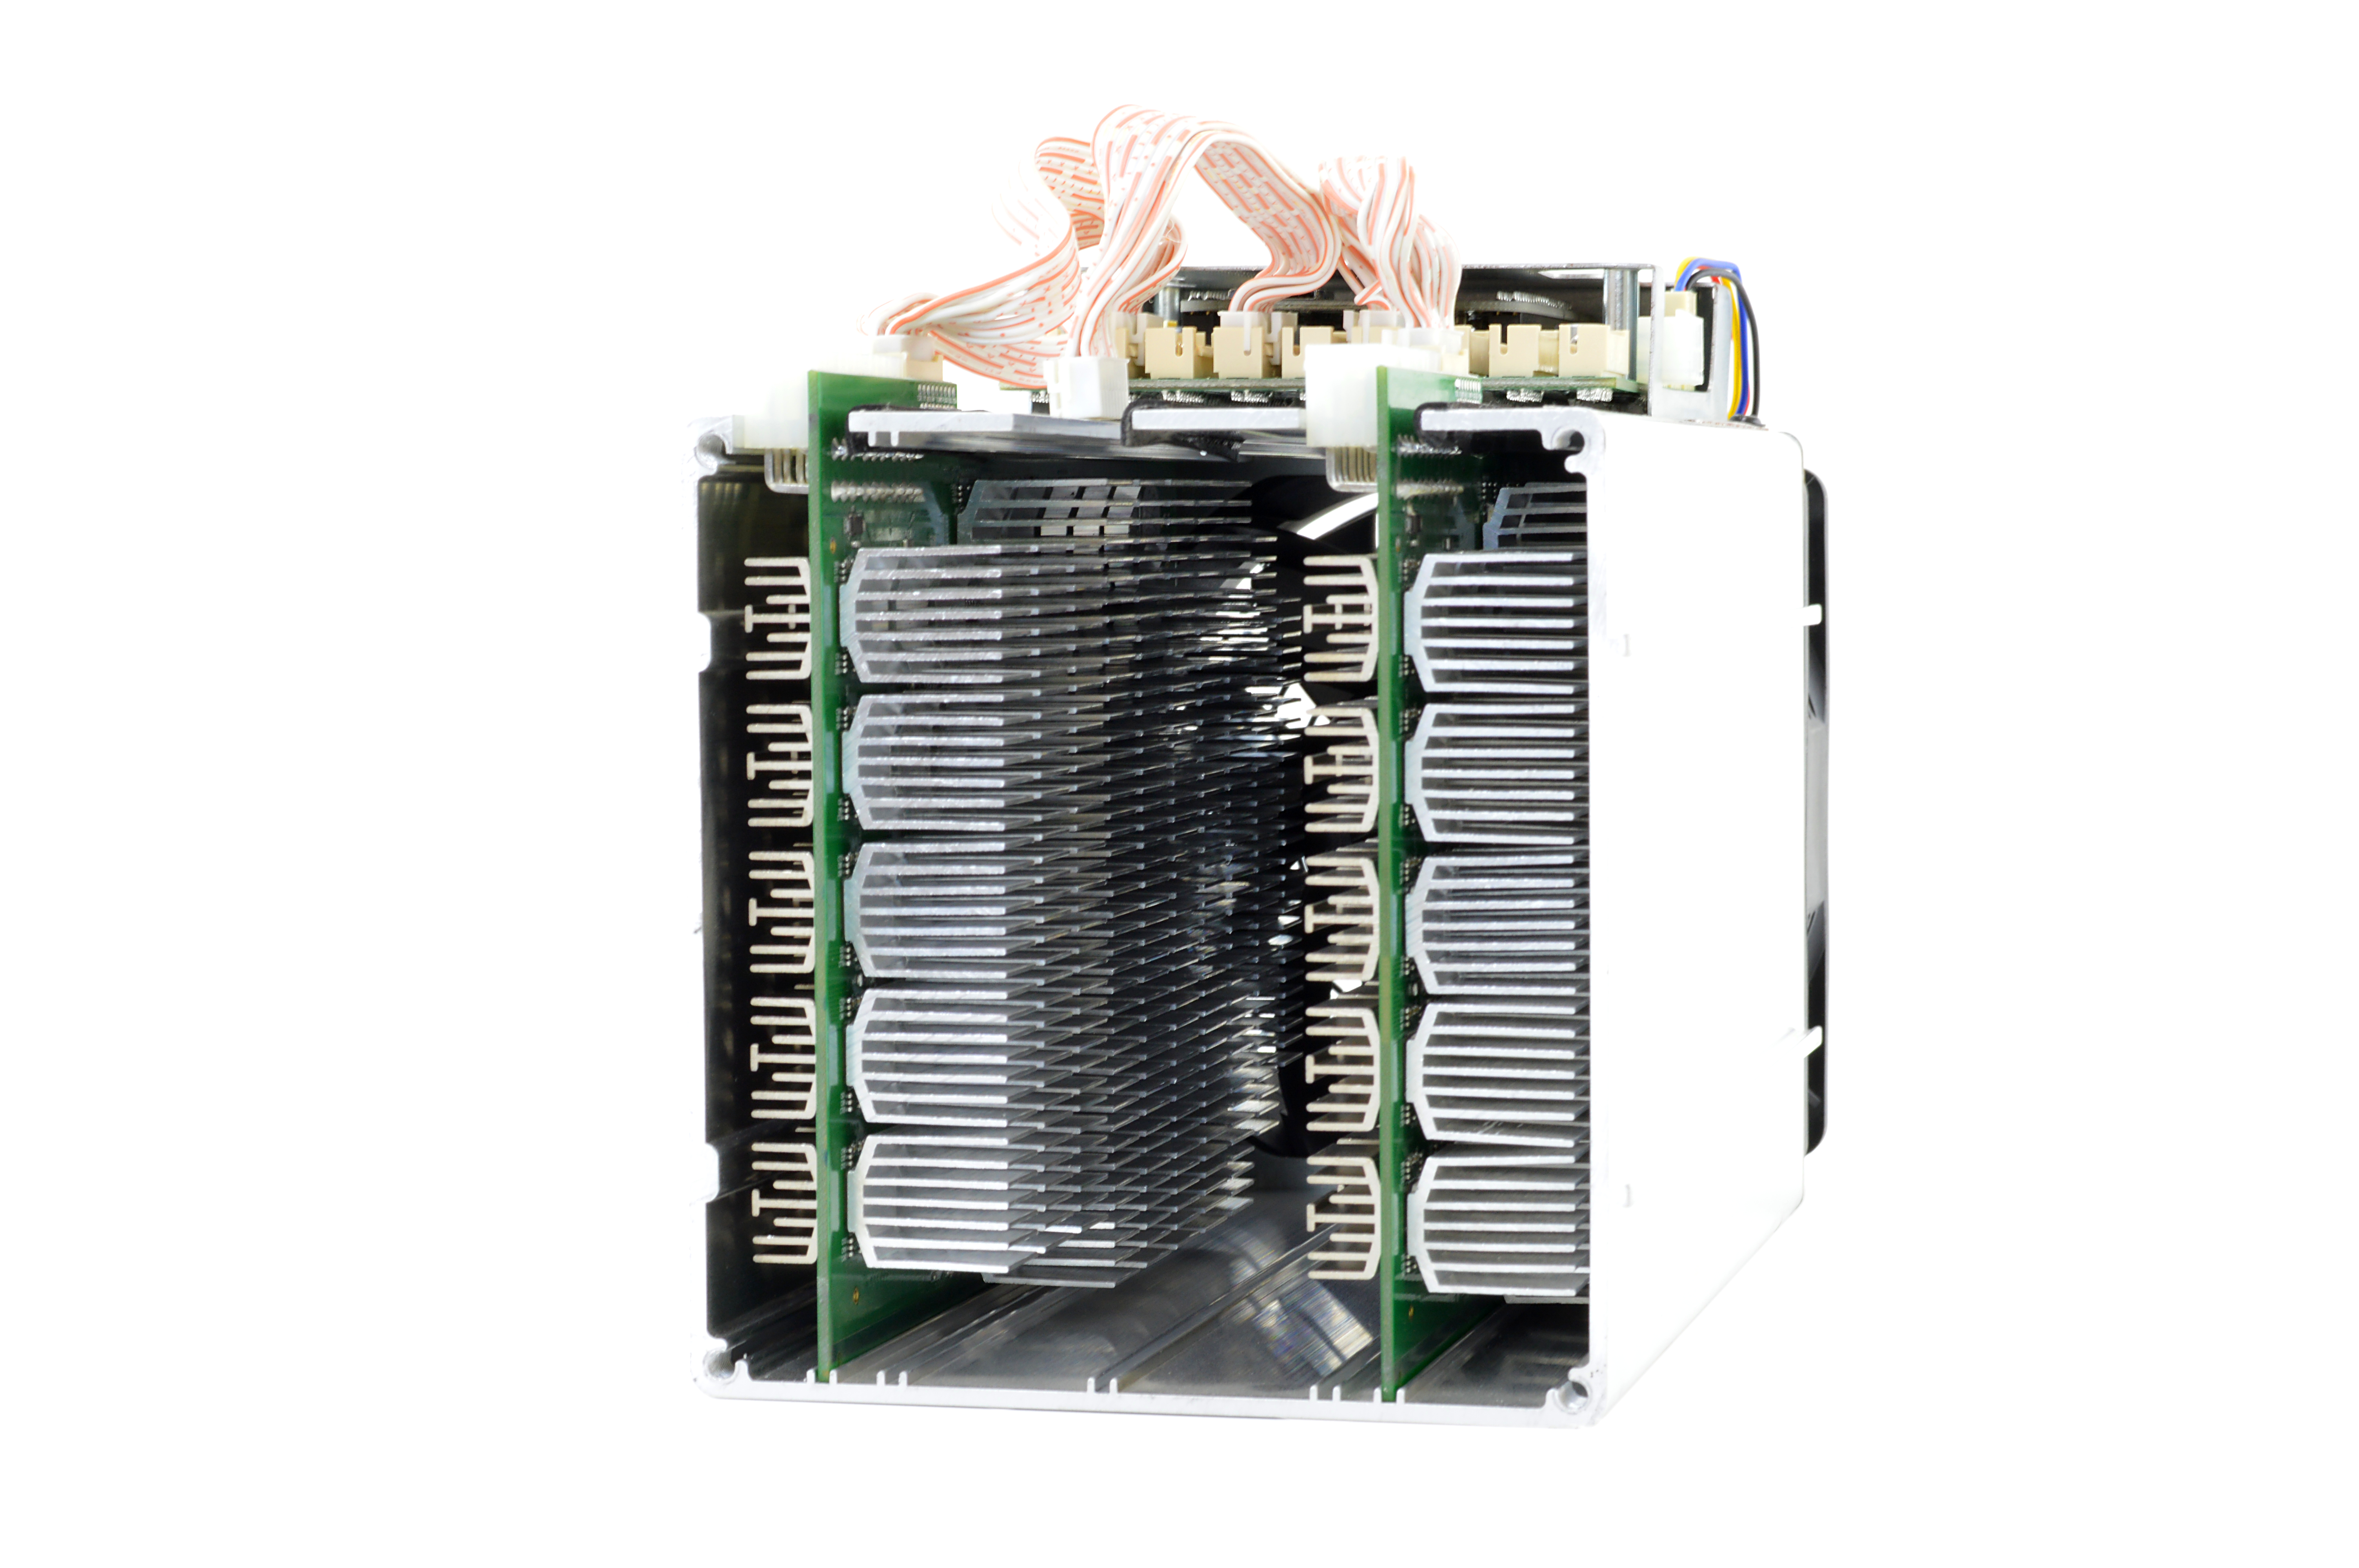 Antminer S9 No Hash Boards Lite Up Antminer S9 Payoff – JyT Colombia